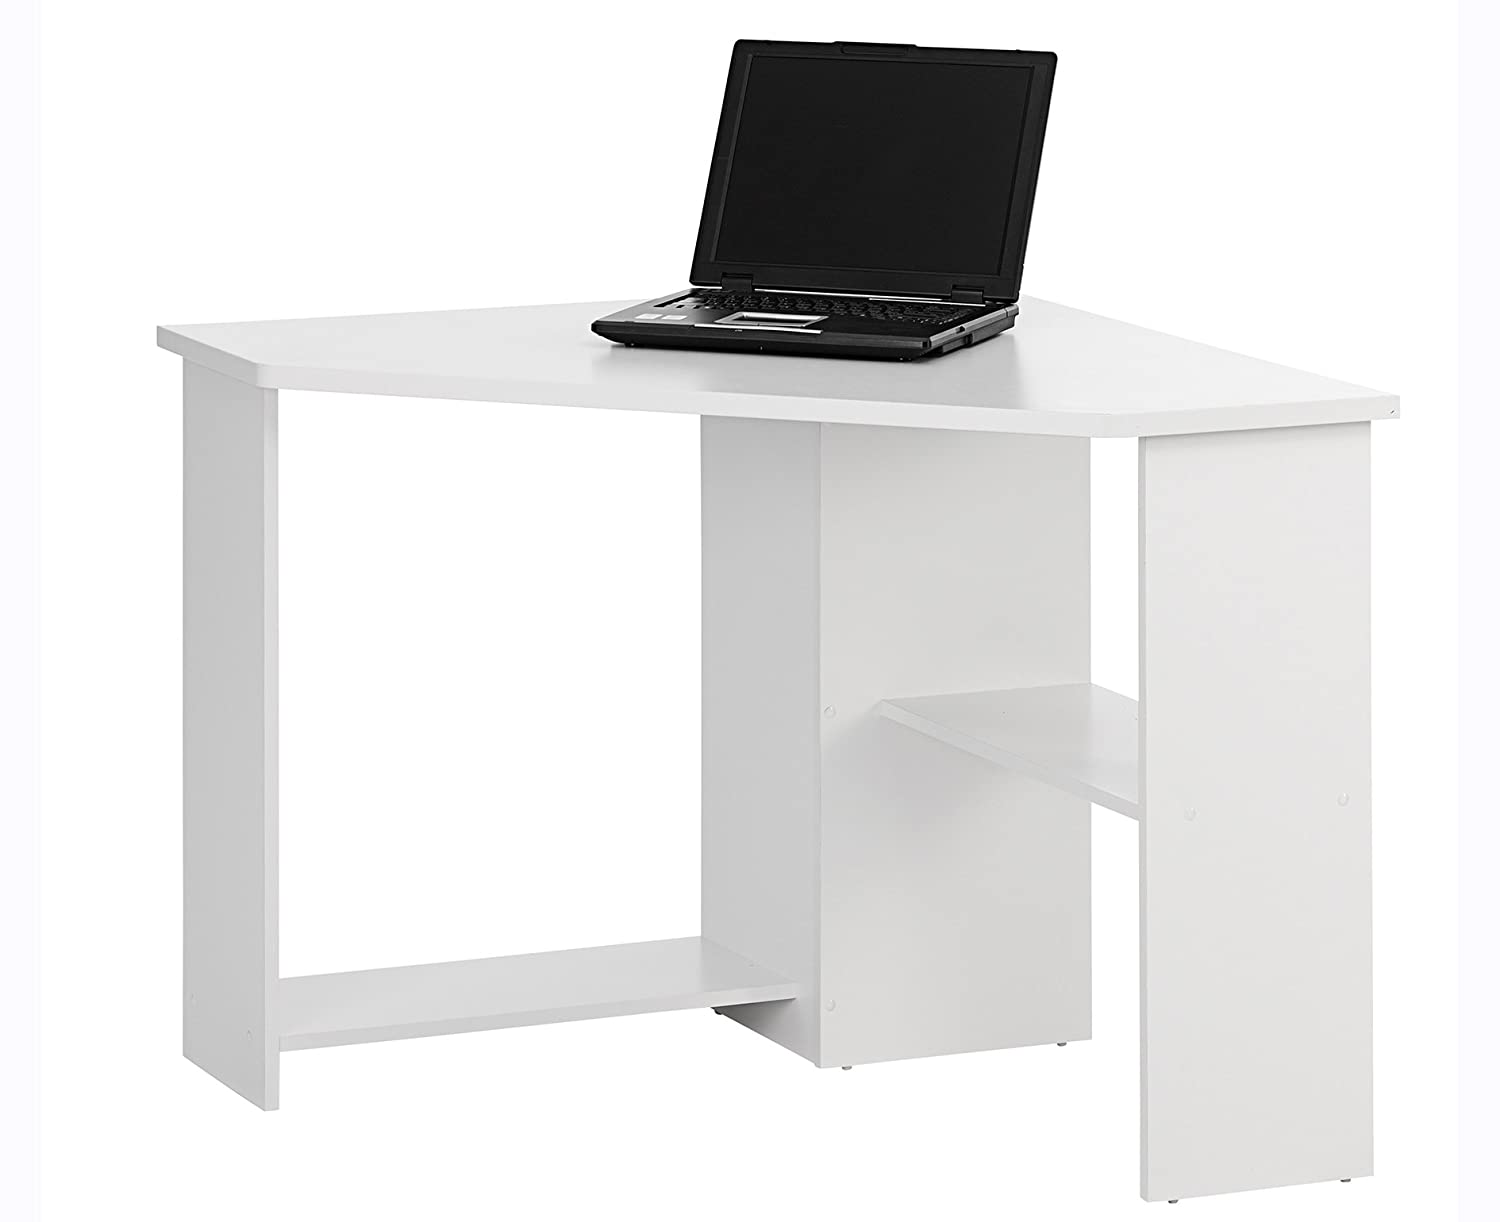 white home office desk. Bray Corner Home Office Desk - Color: White Finish: Amazon.co.uk: Kitchen \u0026